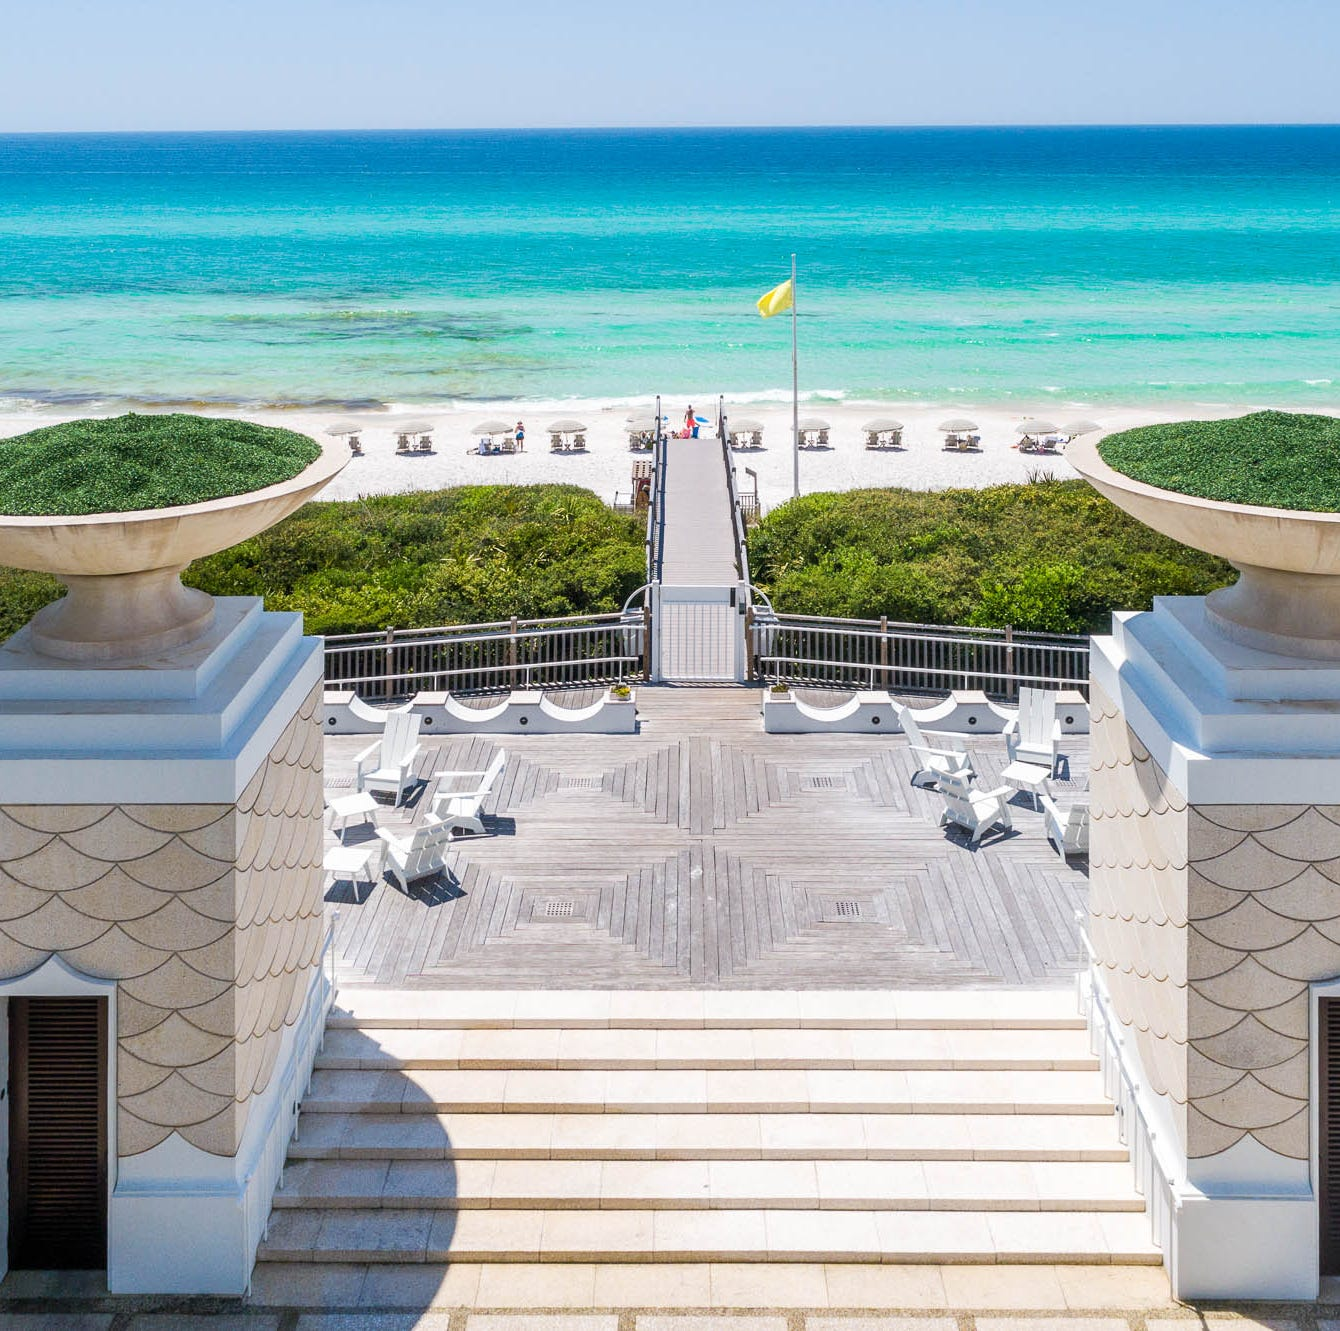 Florida destinations: Alys Beach - An architectural feast on Panhandle